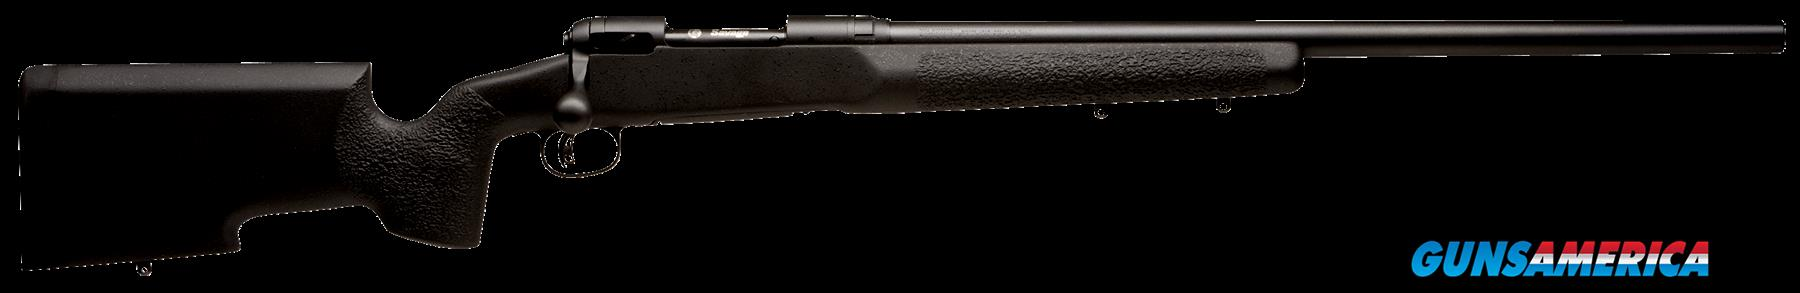 "Savage 18142 10/110 FCP Law Enforcement Bolt 308 Winchester/7.62 NATO 24"" 4+1 McMillian Fiberglass  Guns > Rifles > Savage Rifles > Accutrigger Models"